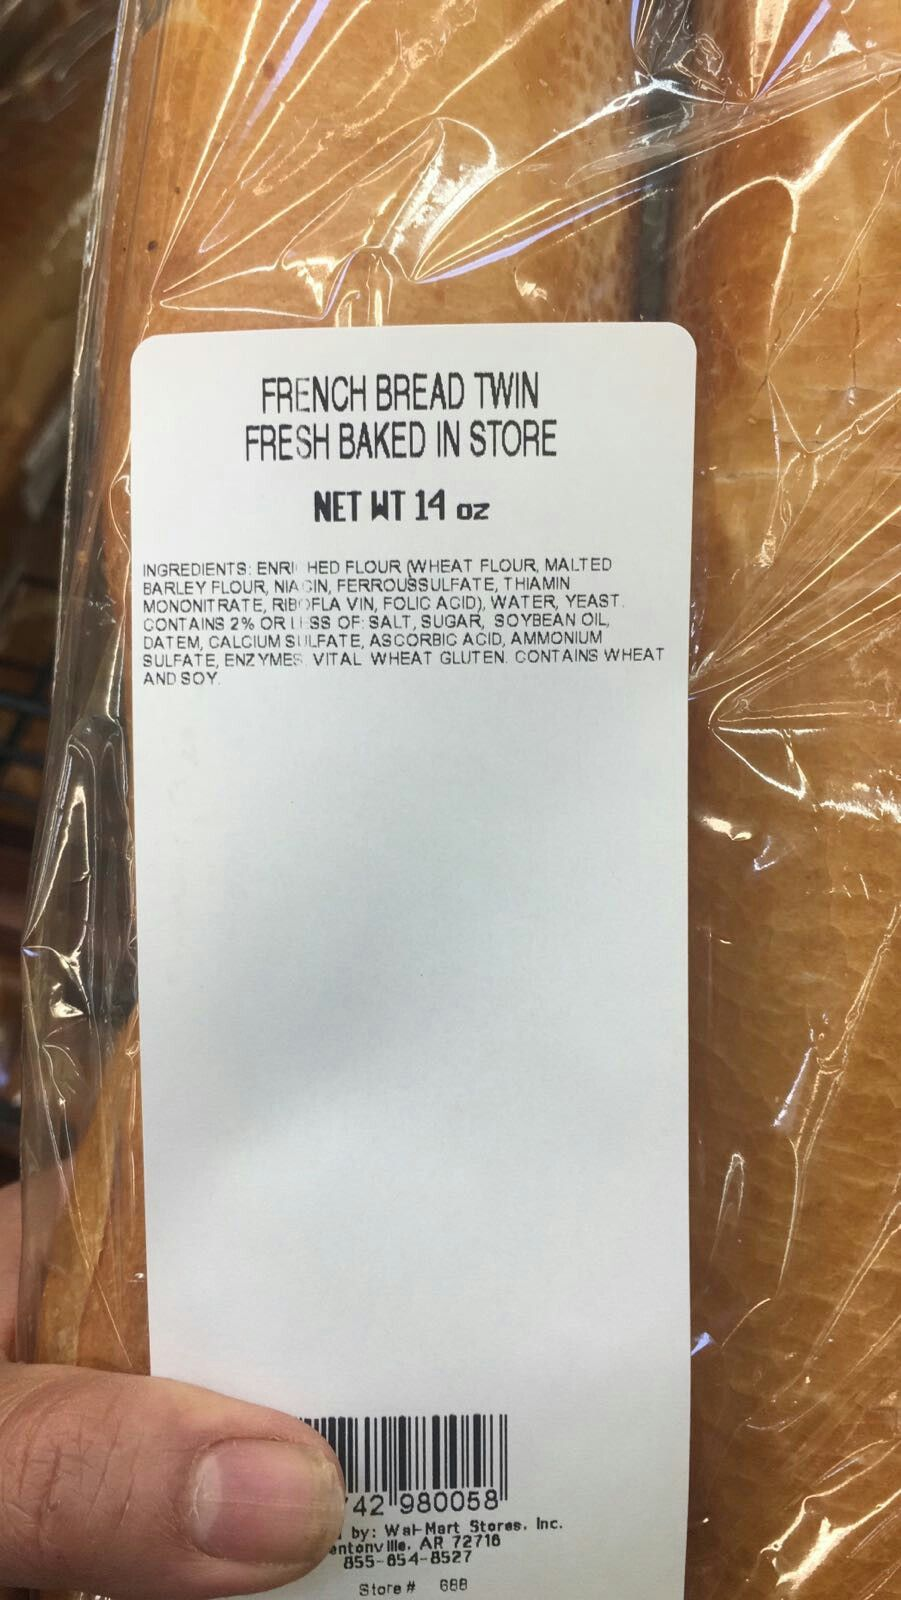 Walmart Fresh Baked French Bread Twin Pack Is Vegetarian And Halal Verified On 11 30 2017 All Parts Are Plant Derived Barley Flour Wheat Gluten Malted Barley